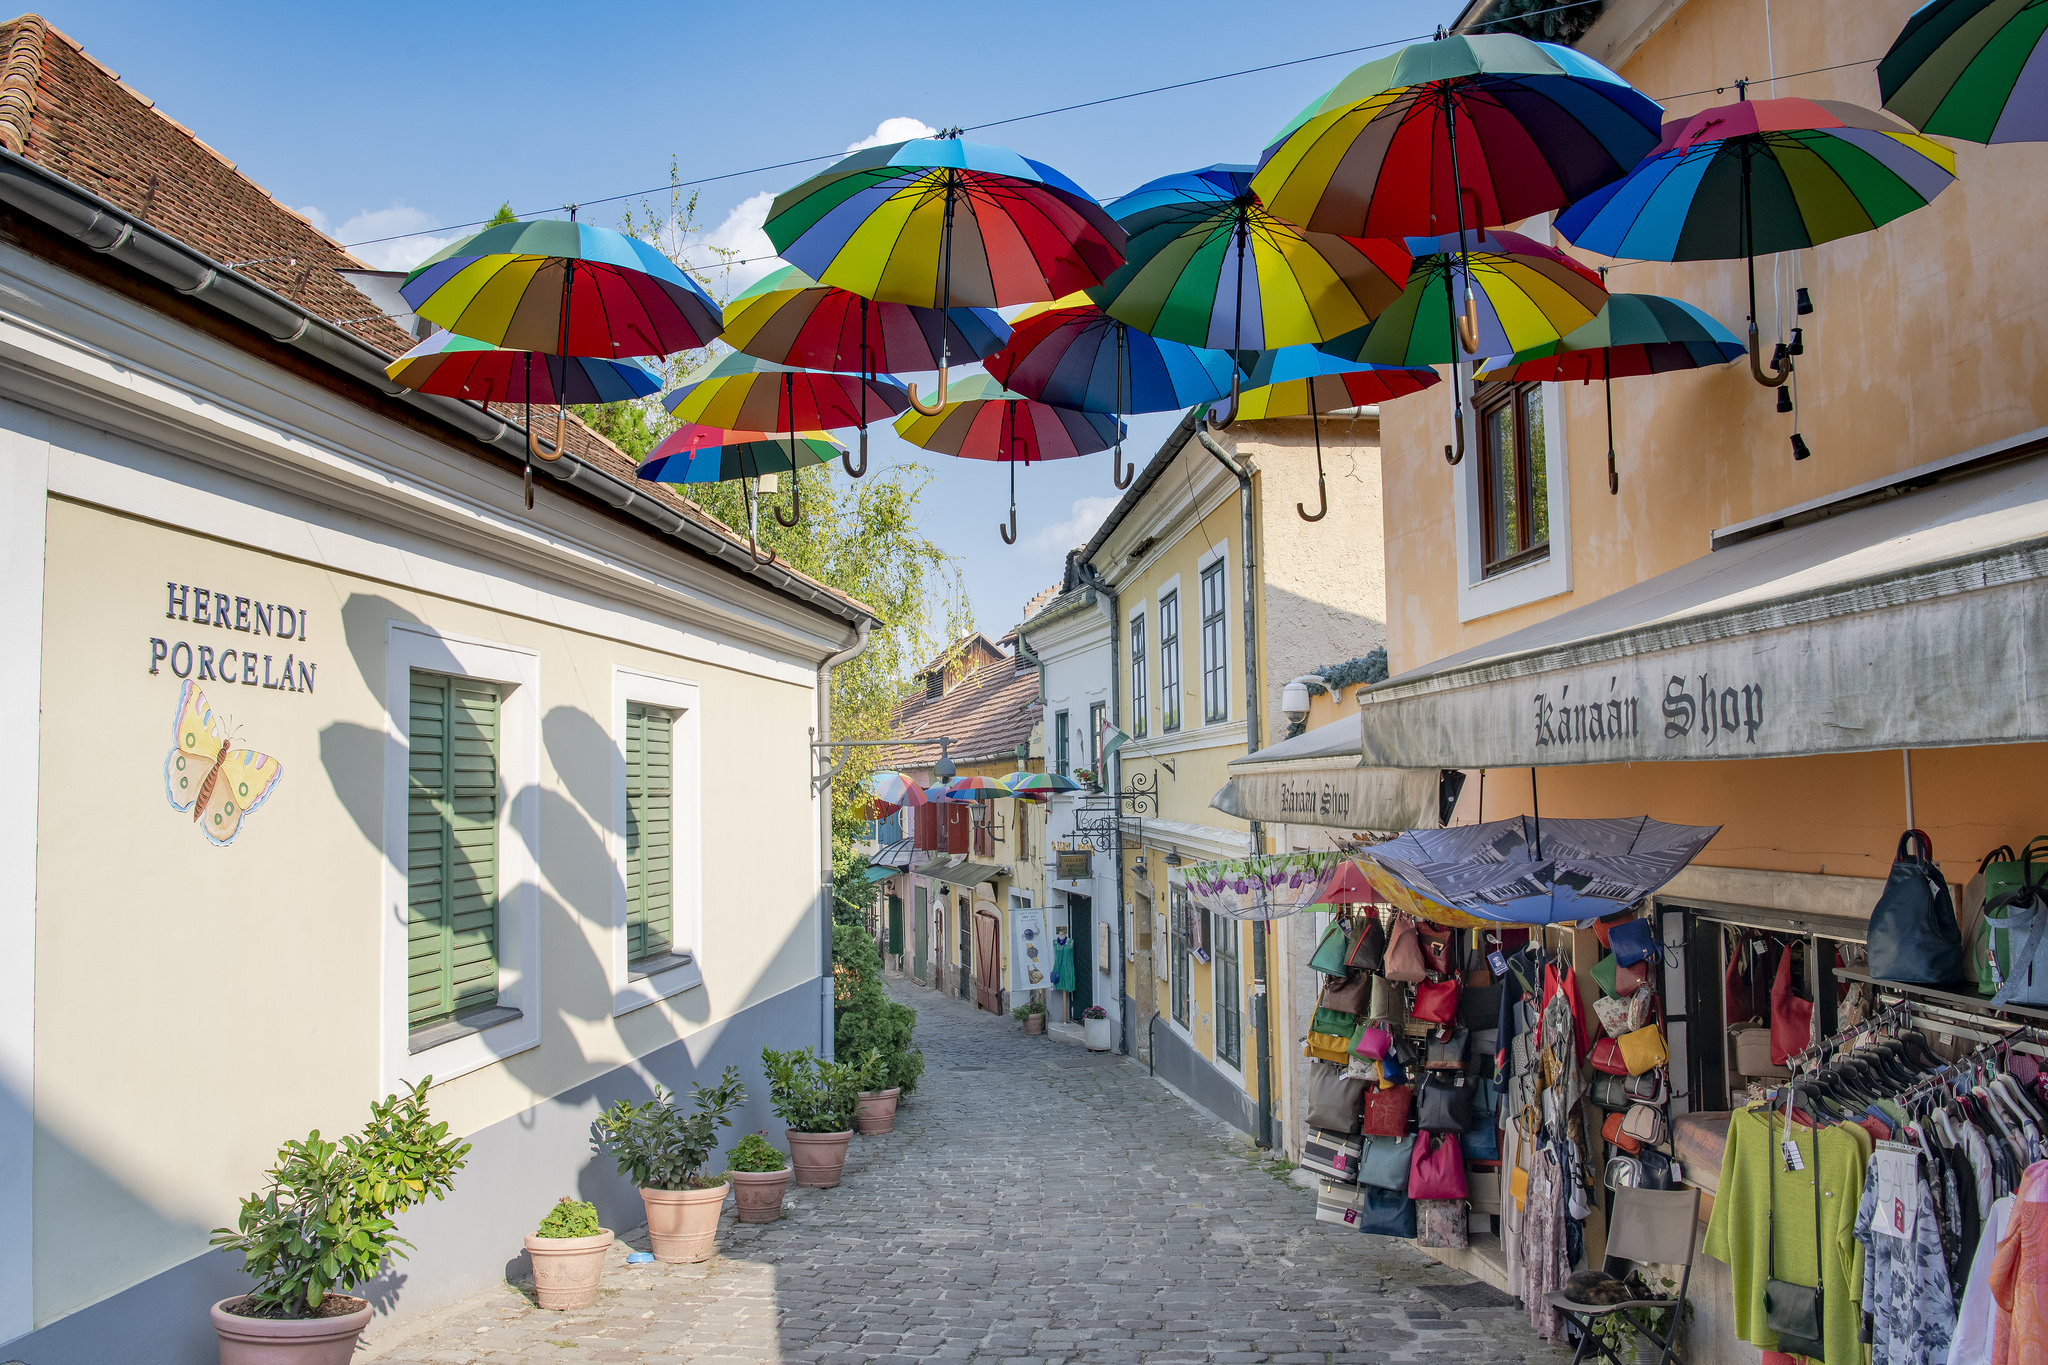 Colorful Hungary (Szentendre, Hungary)